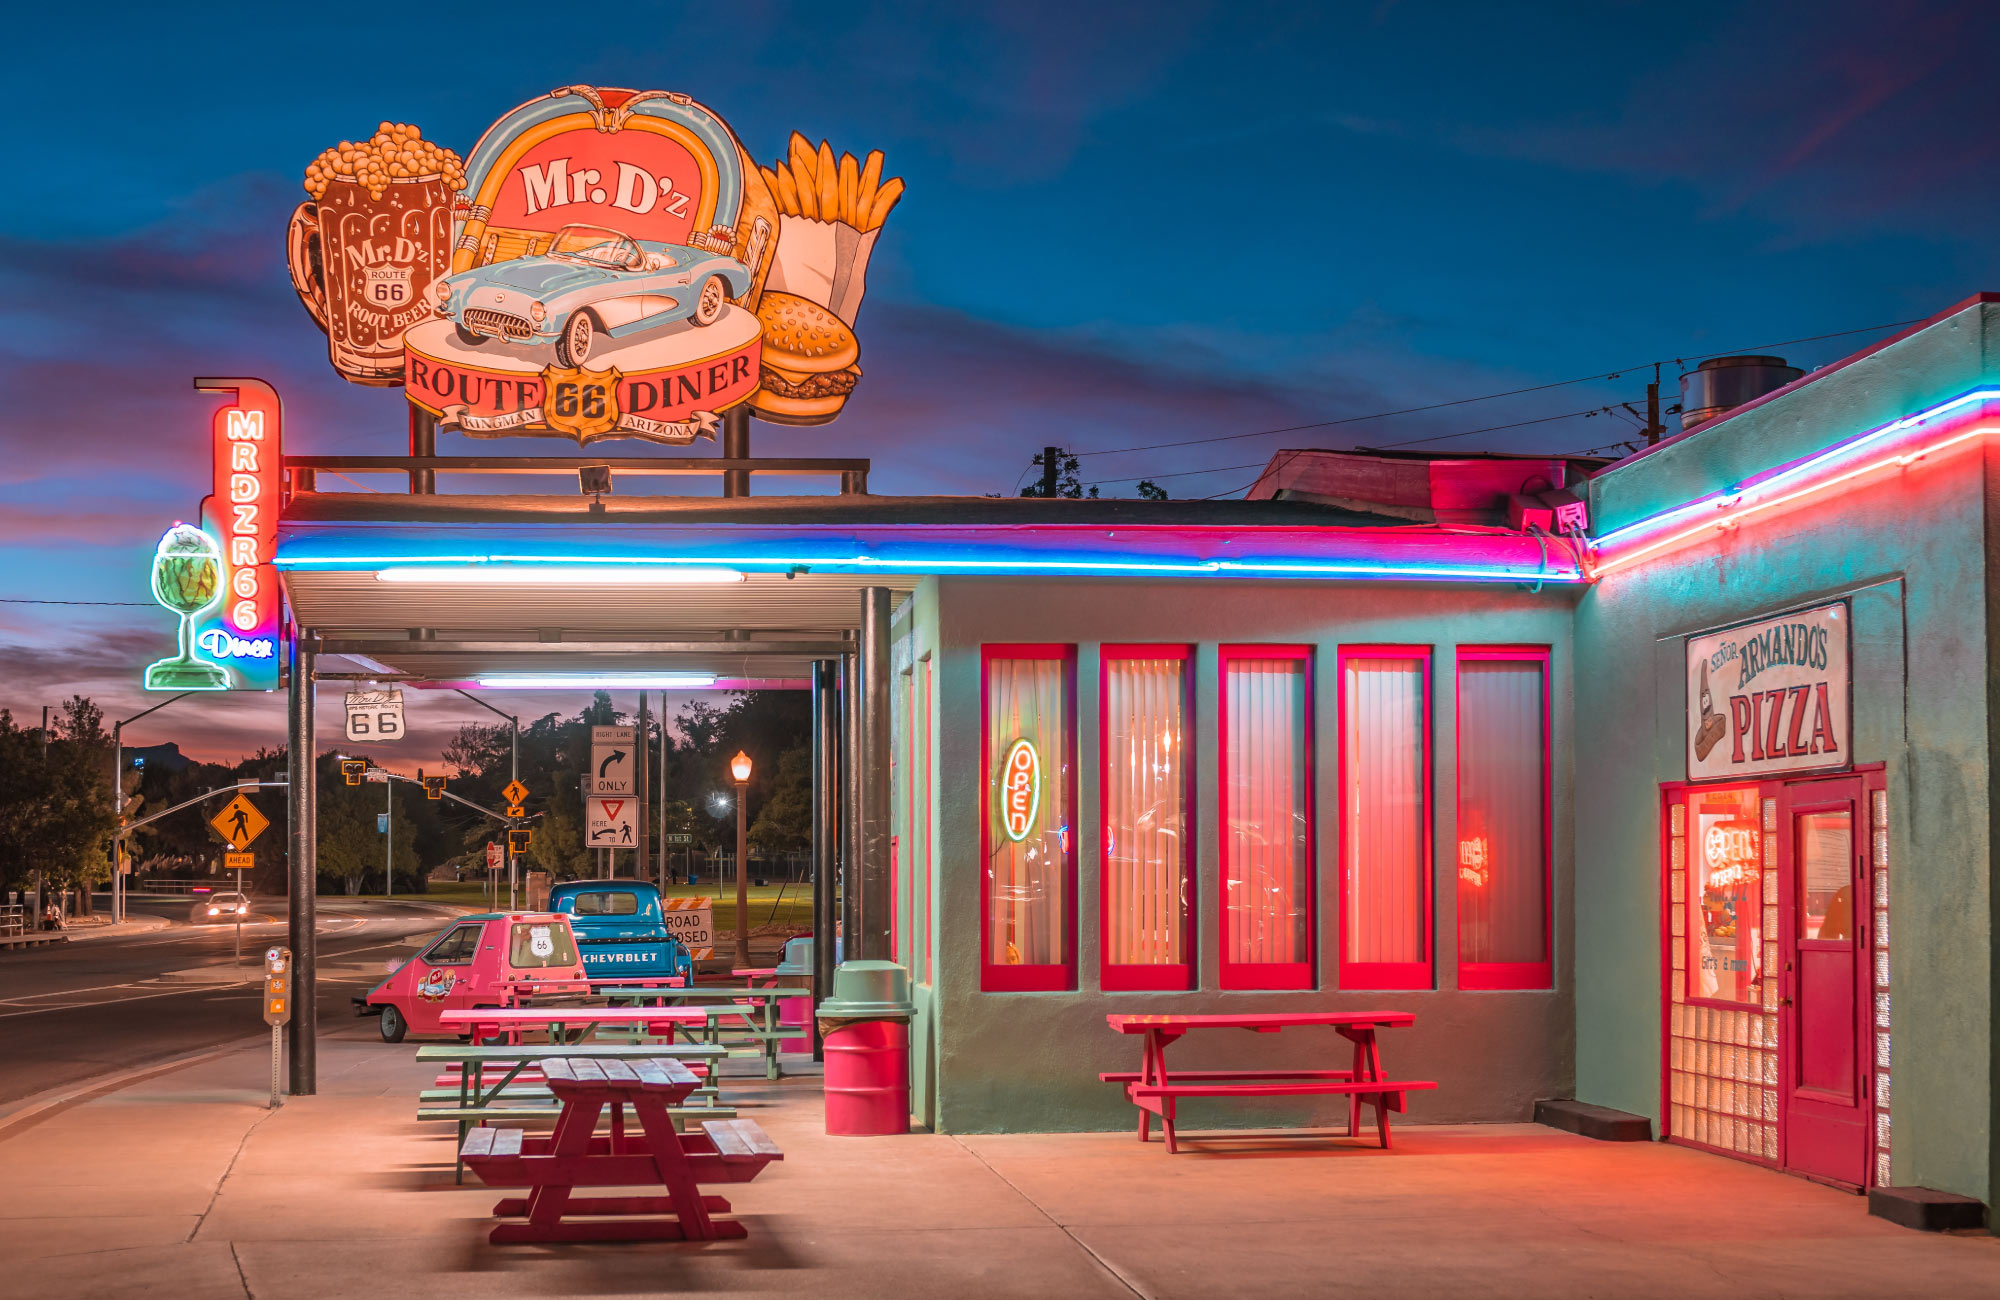 A roadside diner on the USA's Route 66.